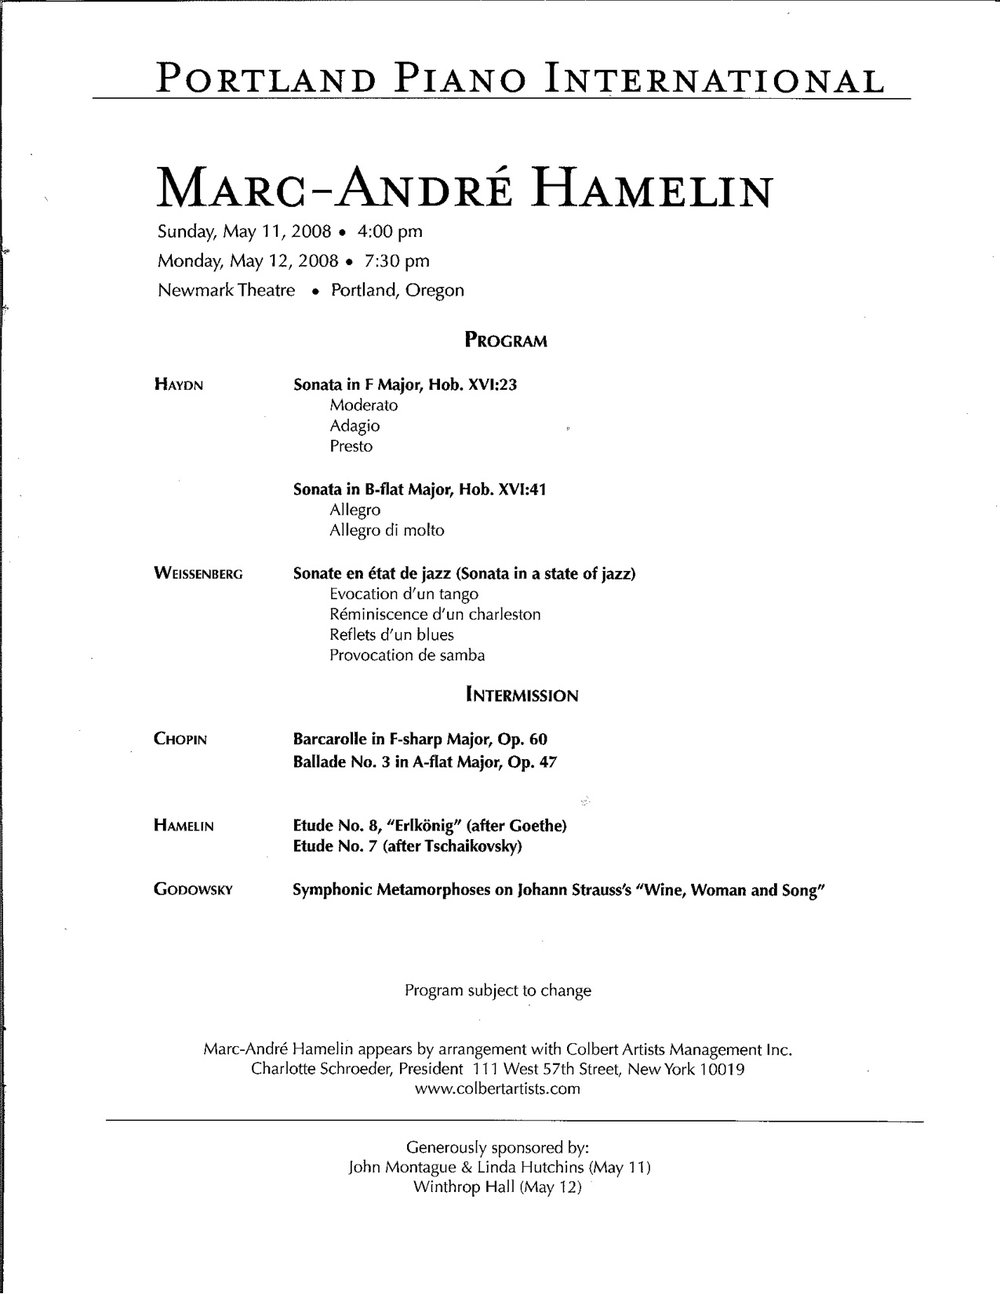 Hamelin_Program2.jpg